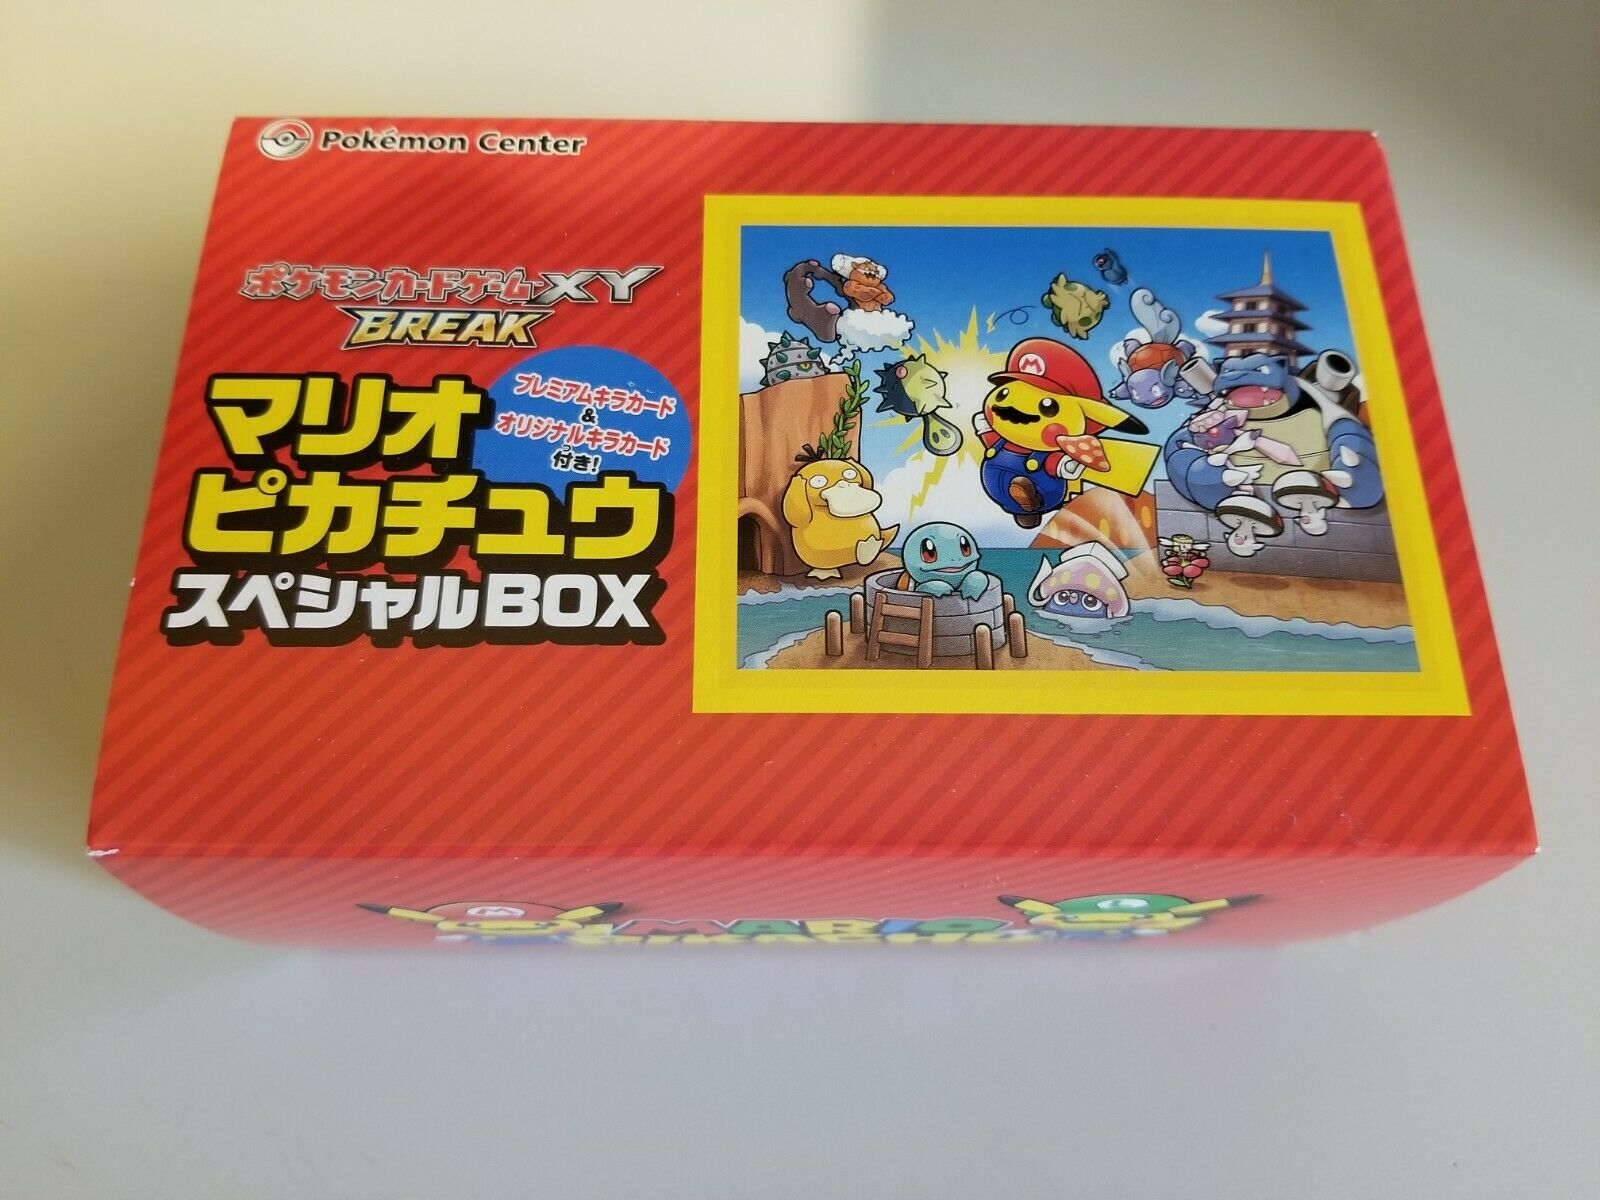 Japanese Mario Pikachu Pokemon Center Collectible Box Mario Version - No Cards